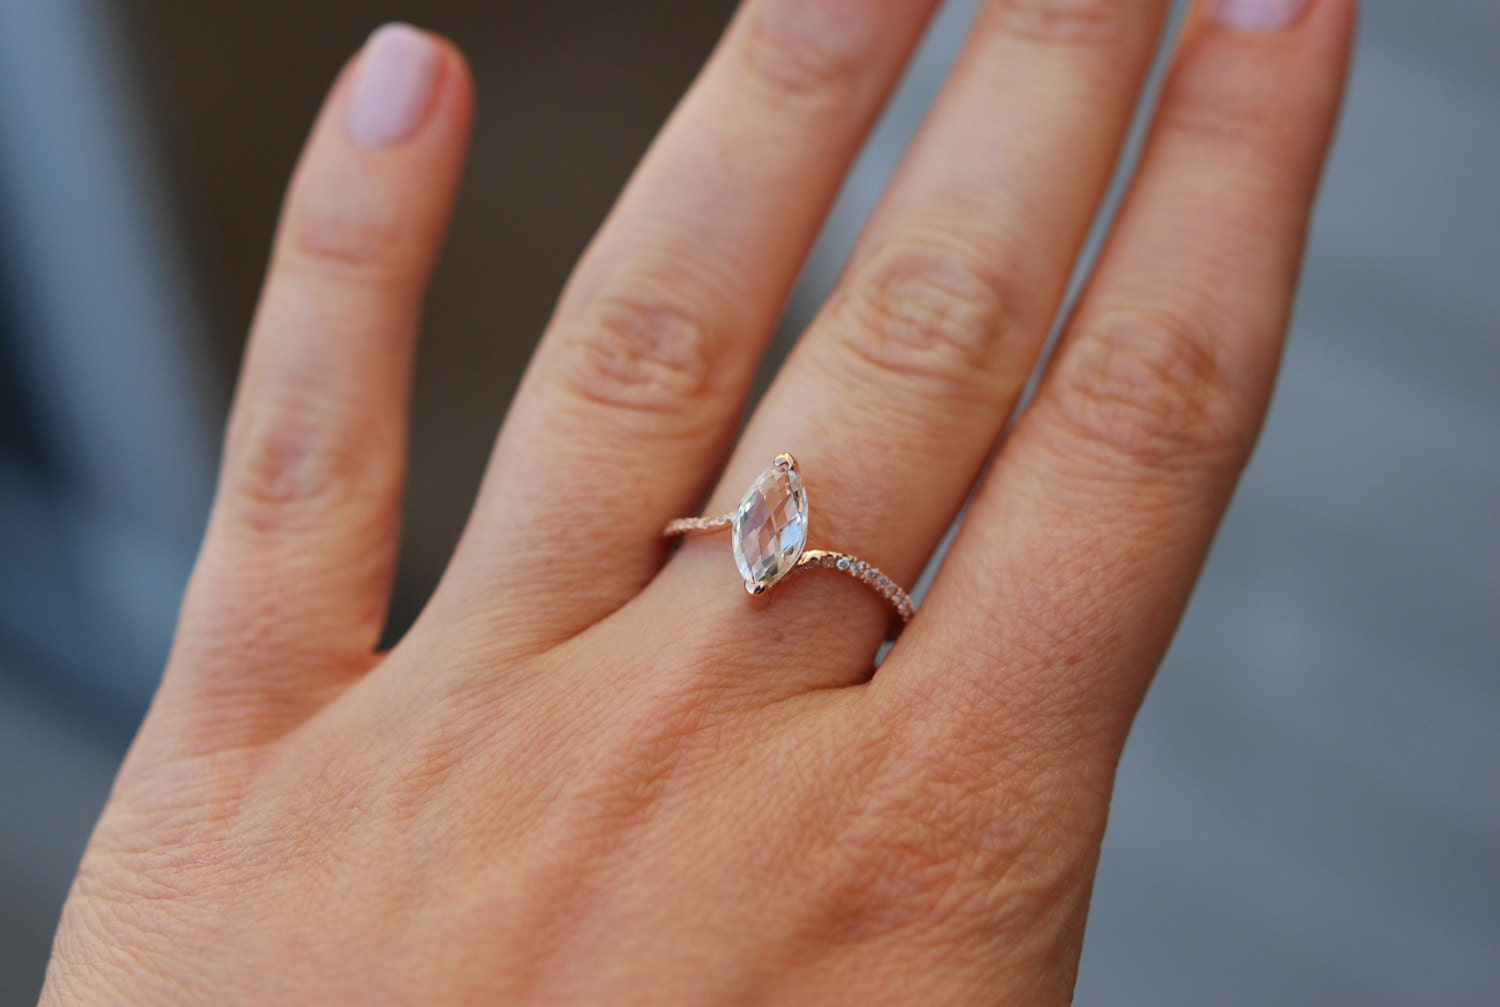 unconventional engagement ring marquise engagement ring rose gold diamond ring engagement ring. Black Bedroom Furniture Sets. Home Design Ideas